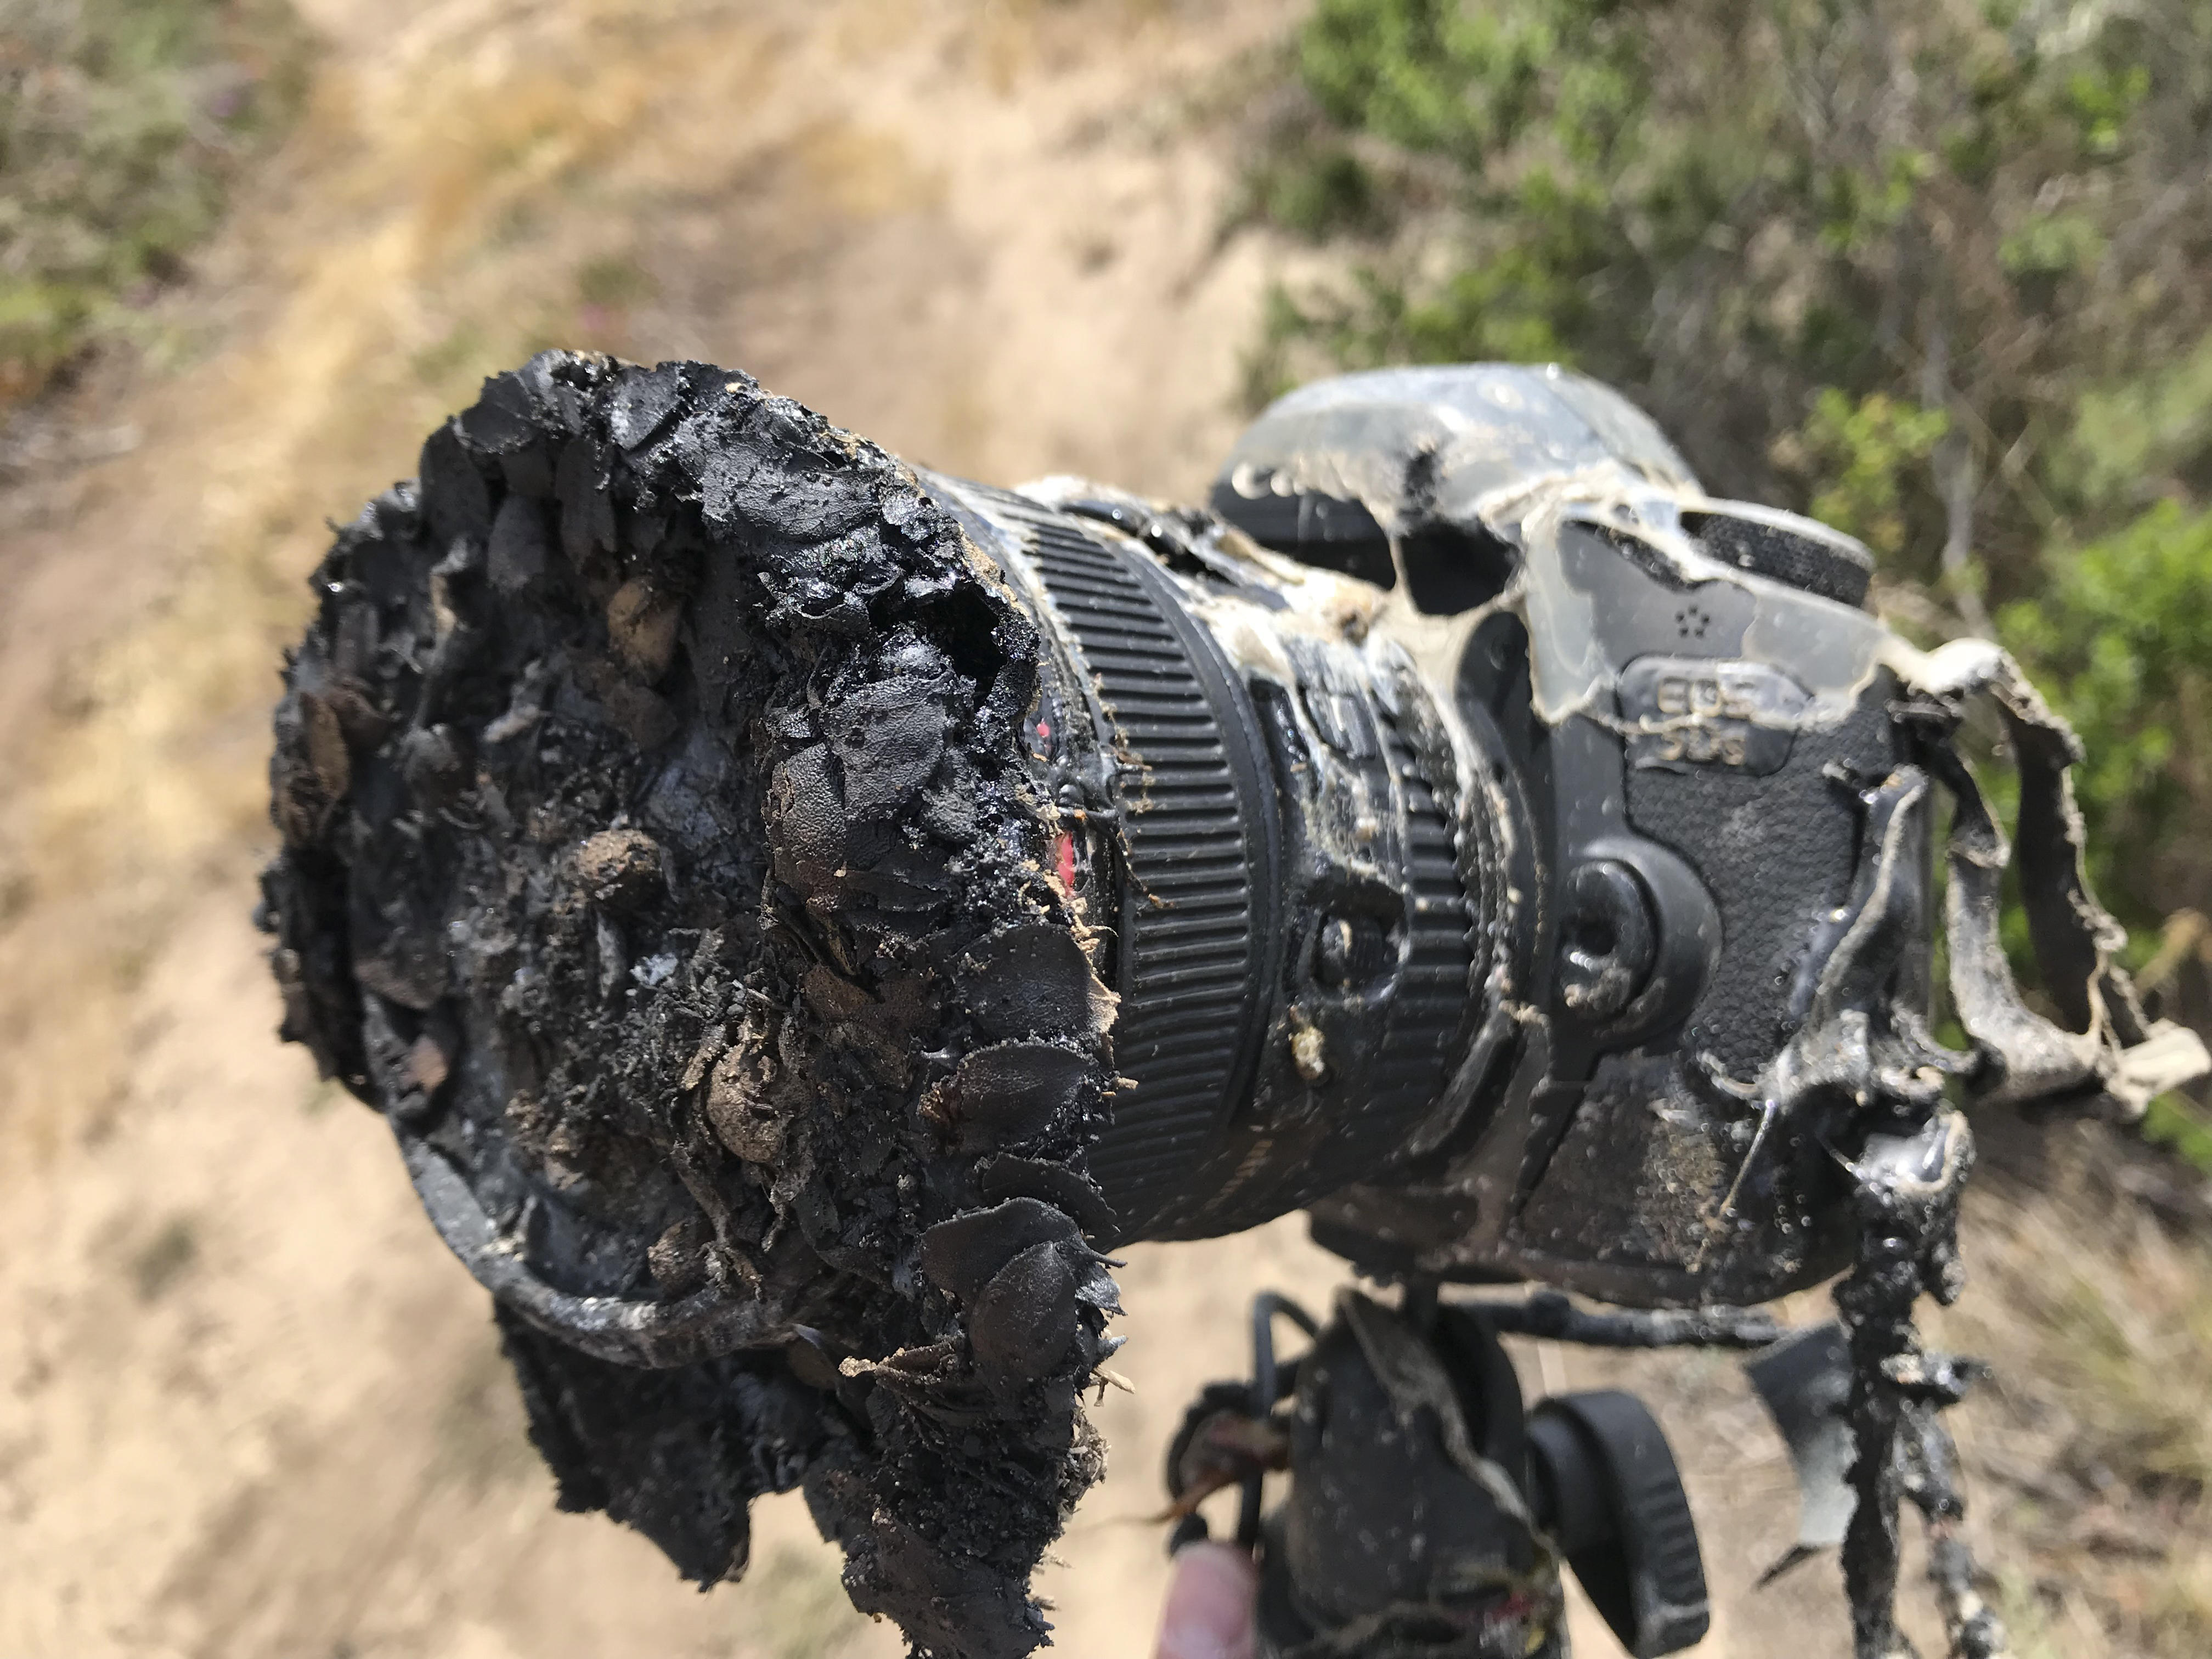 Camera melted by a grass fire that was started by a rocket launch.